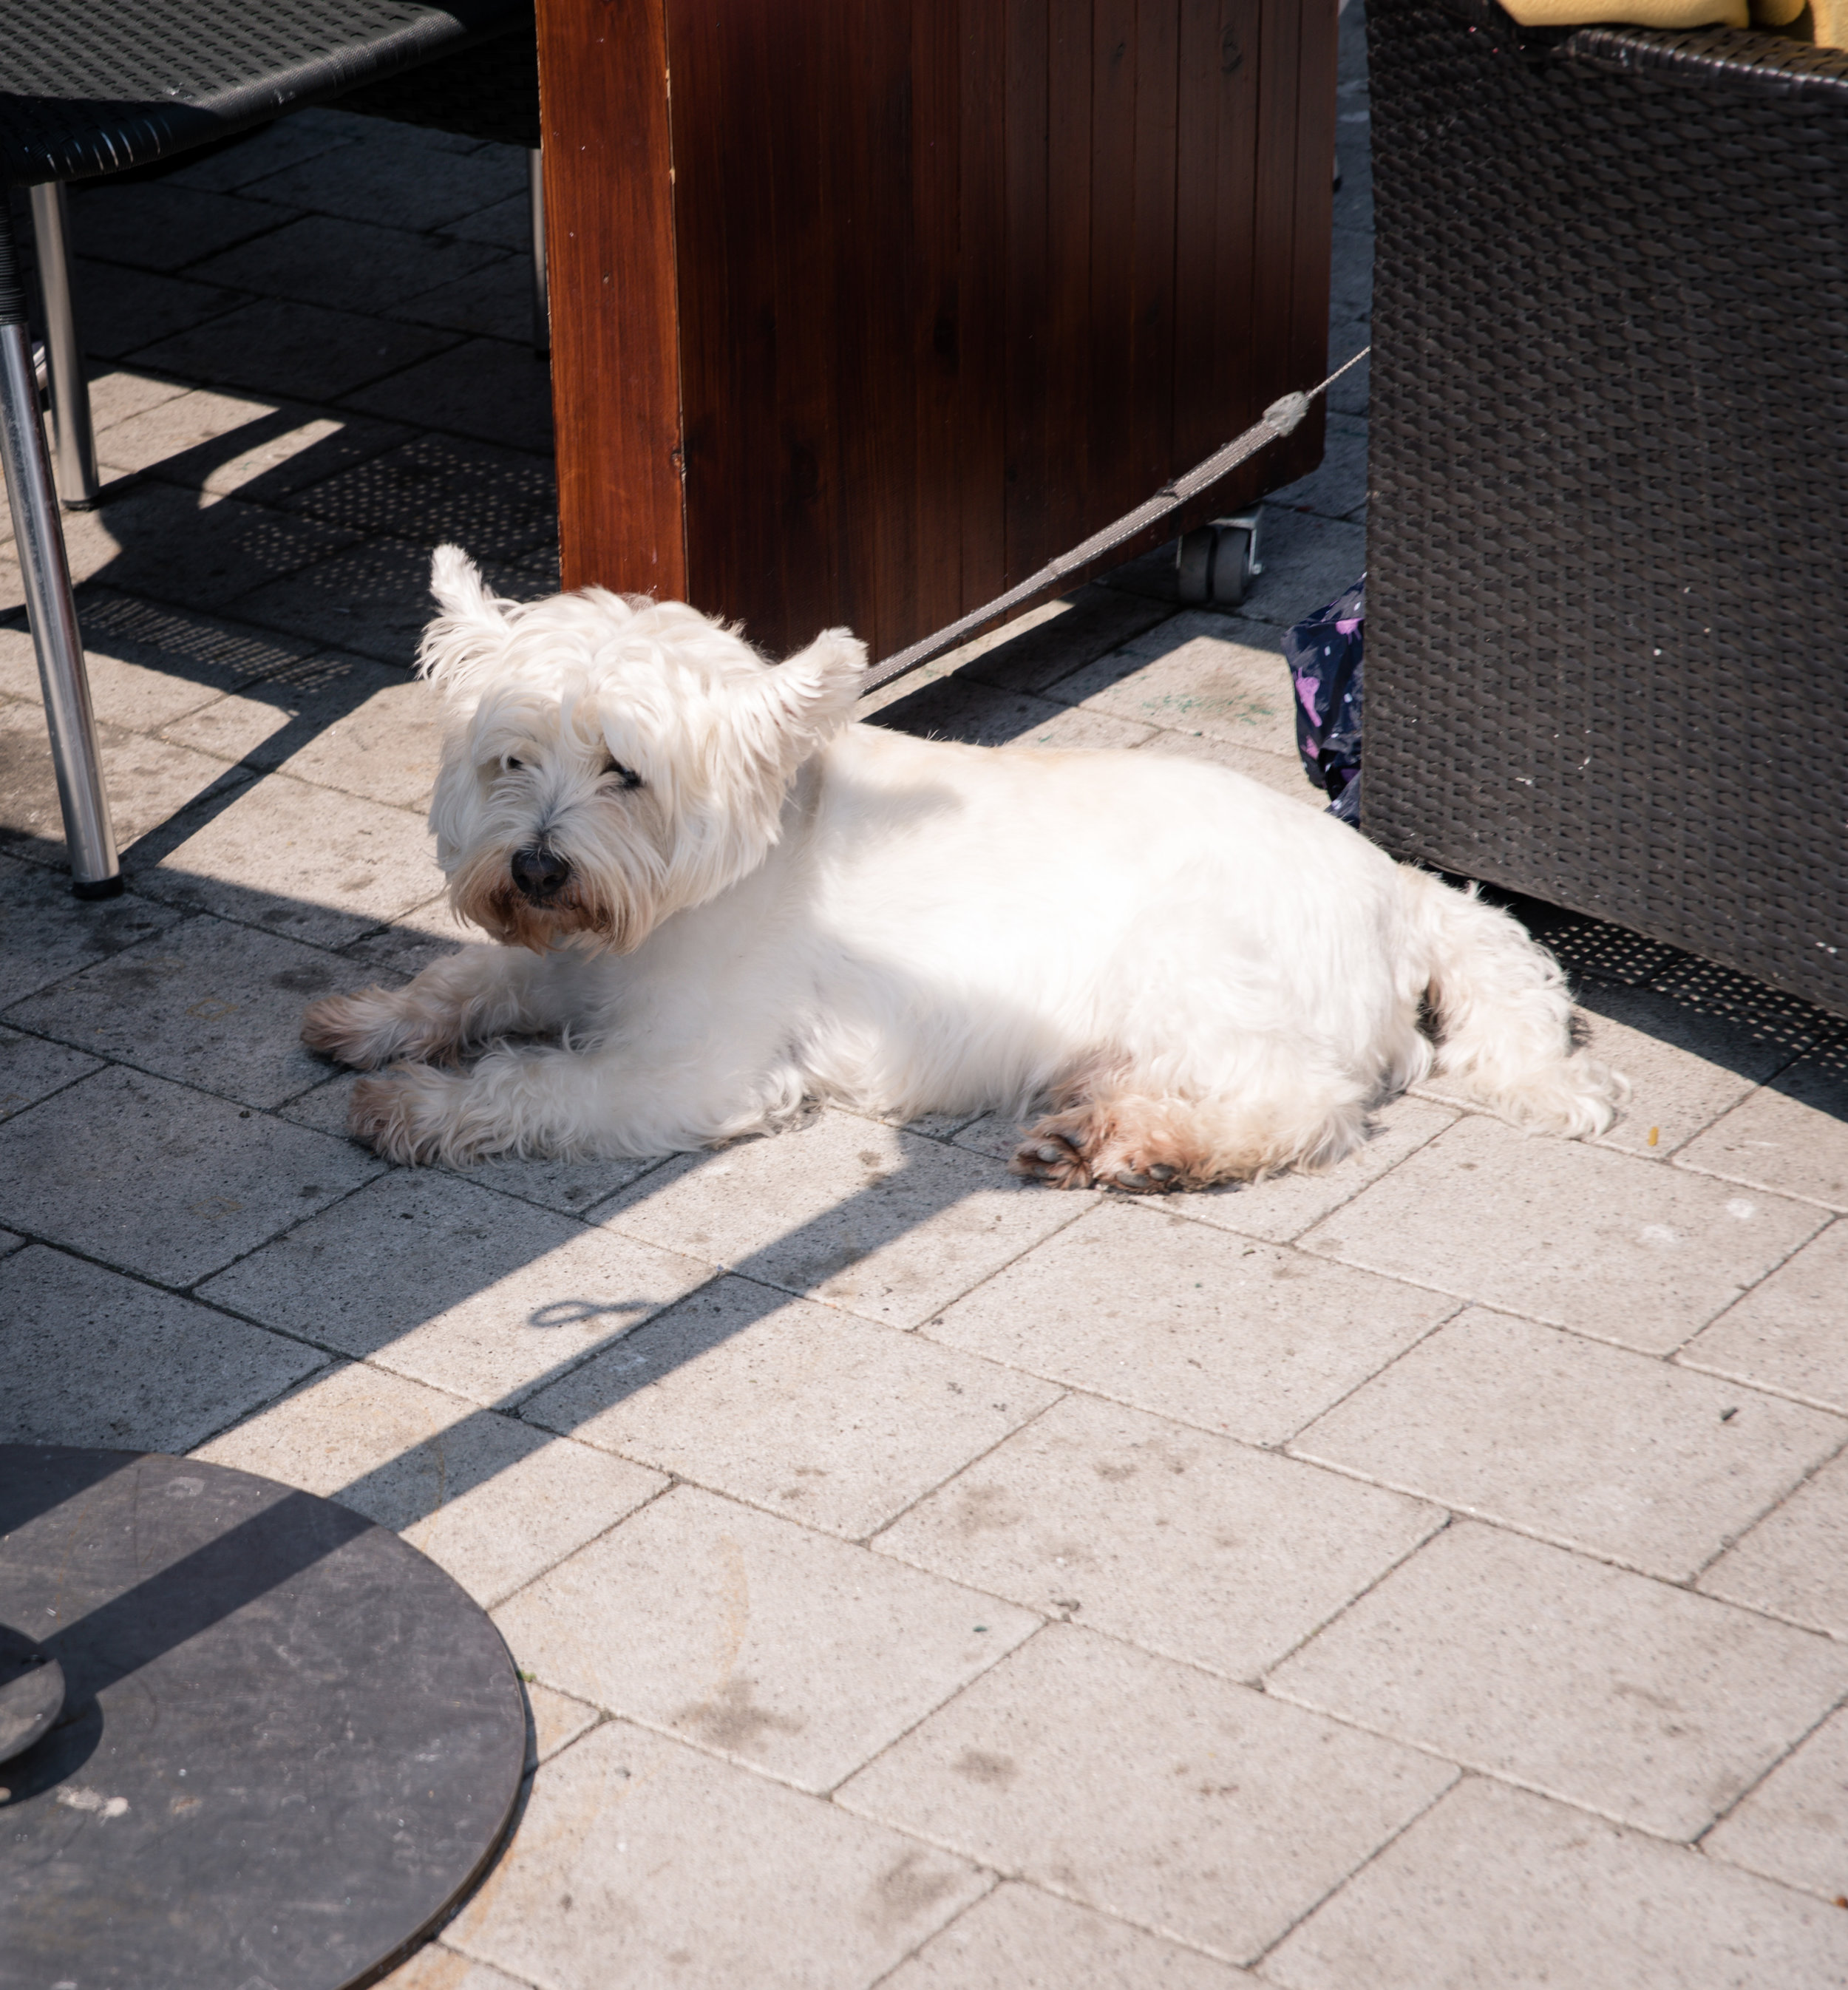 A dog sitting beside its family at a restuarant.